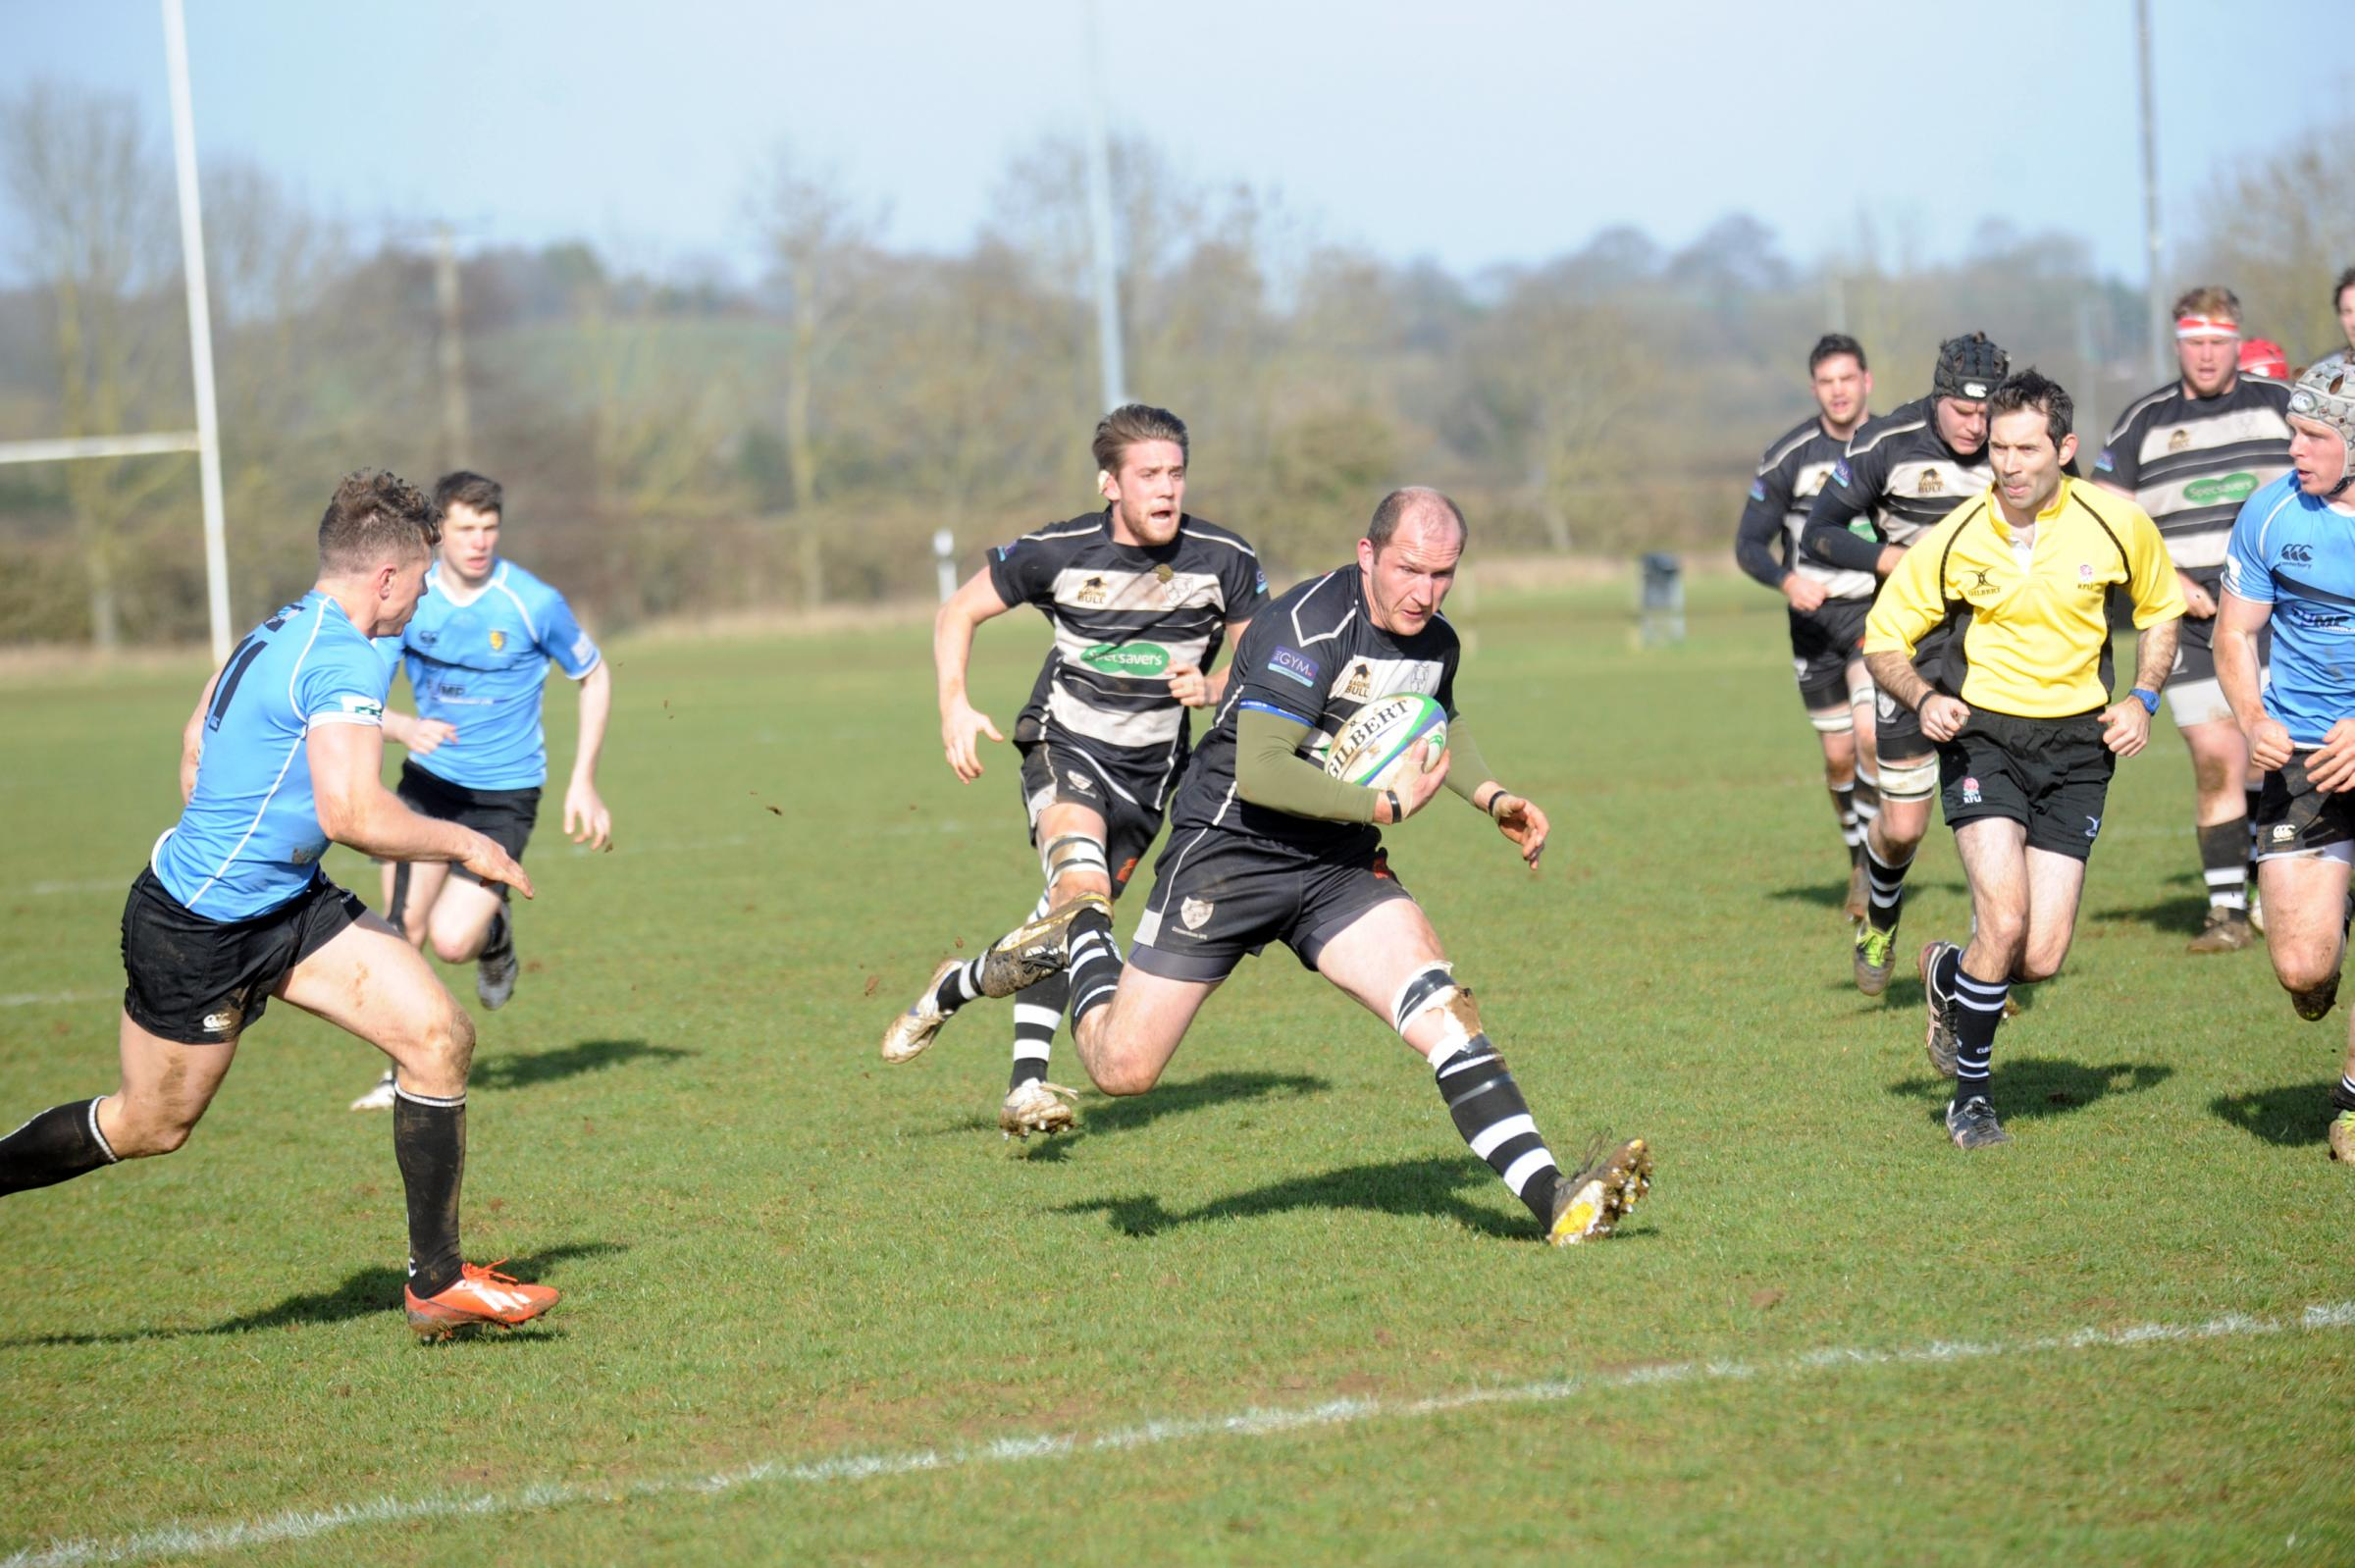 Ian Cook was a try scorer for Chippenham